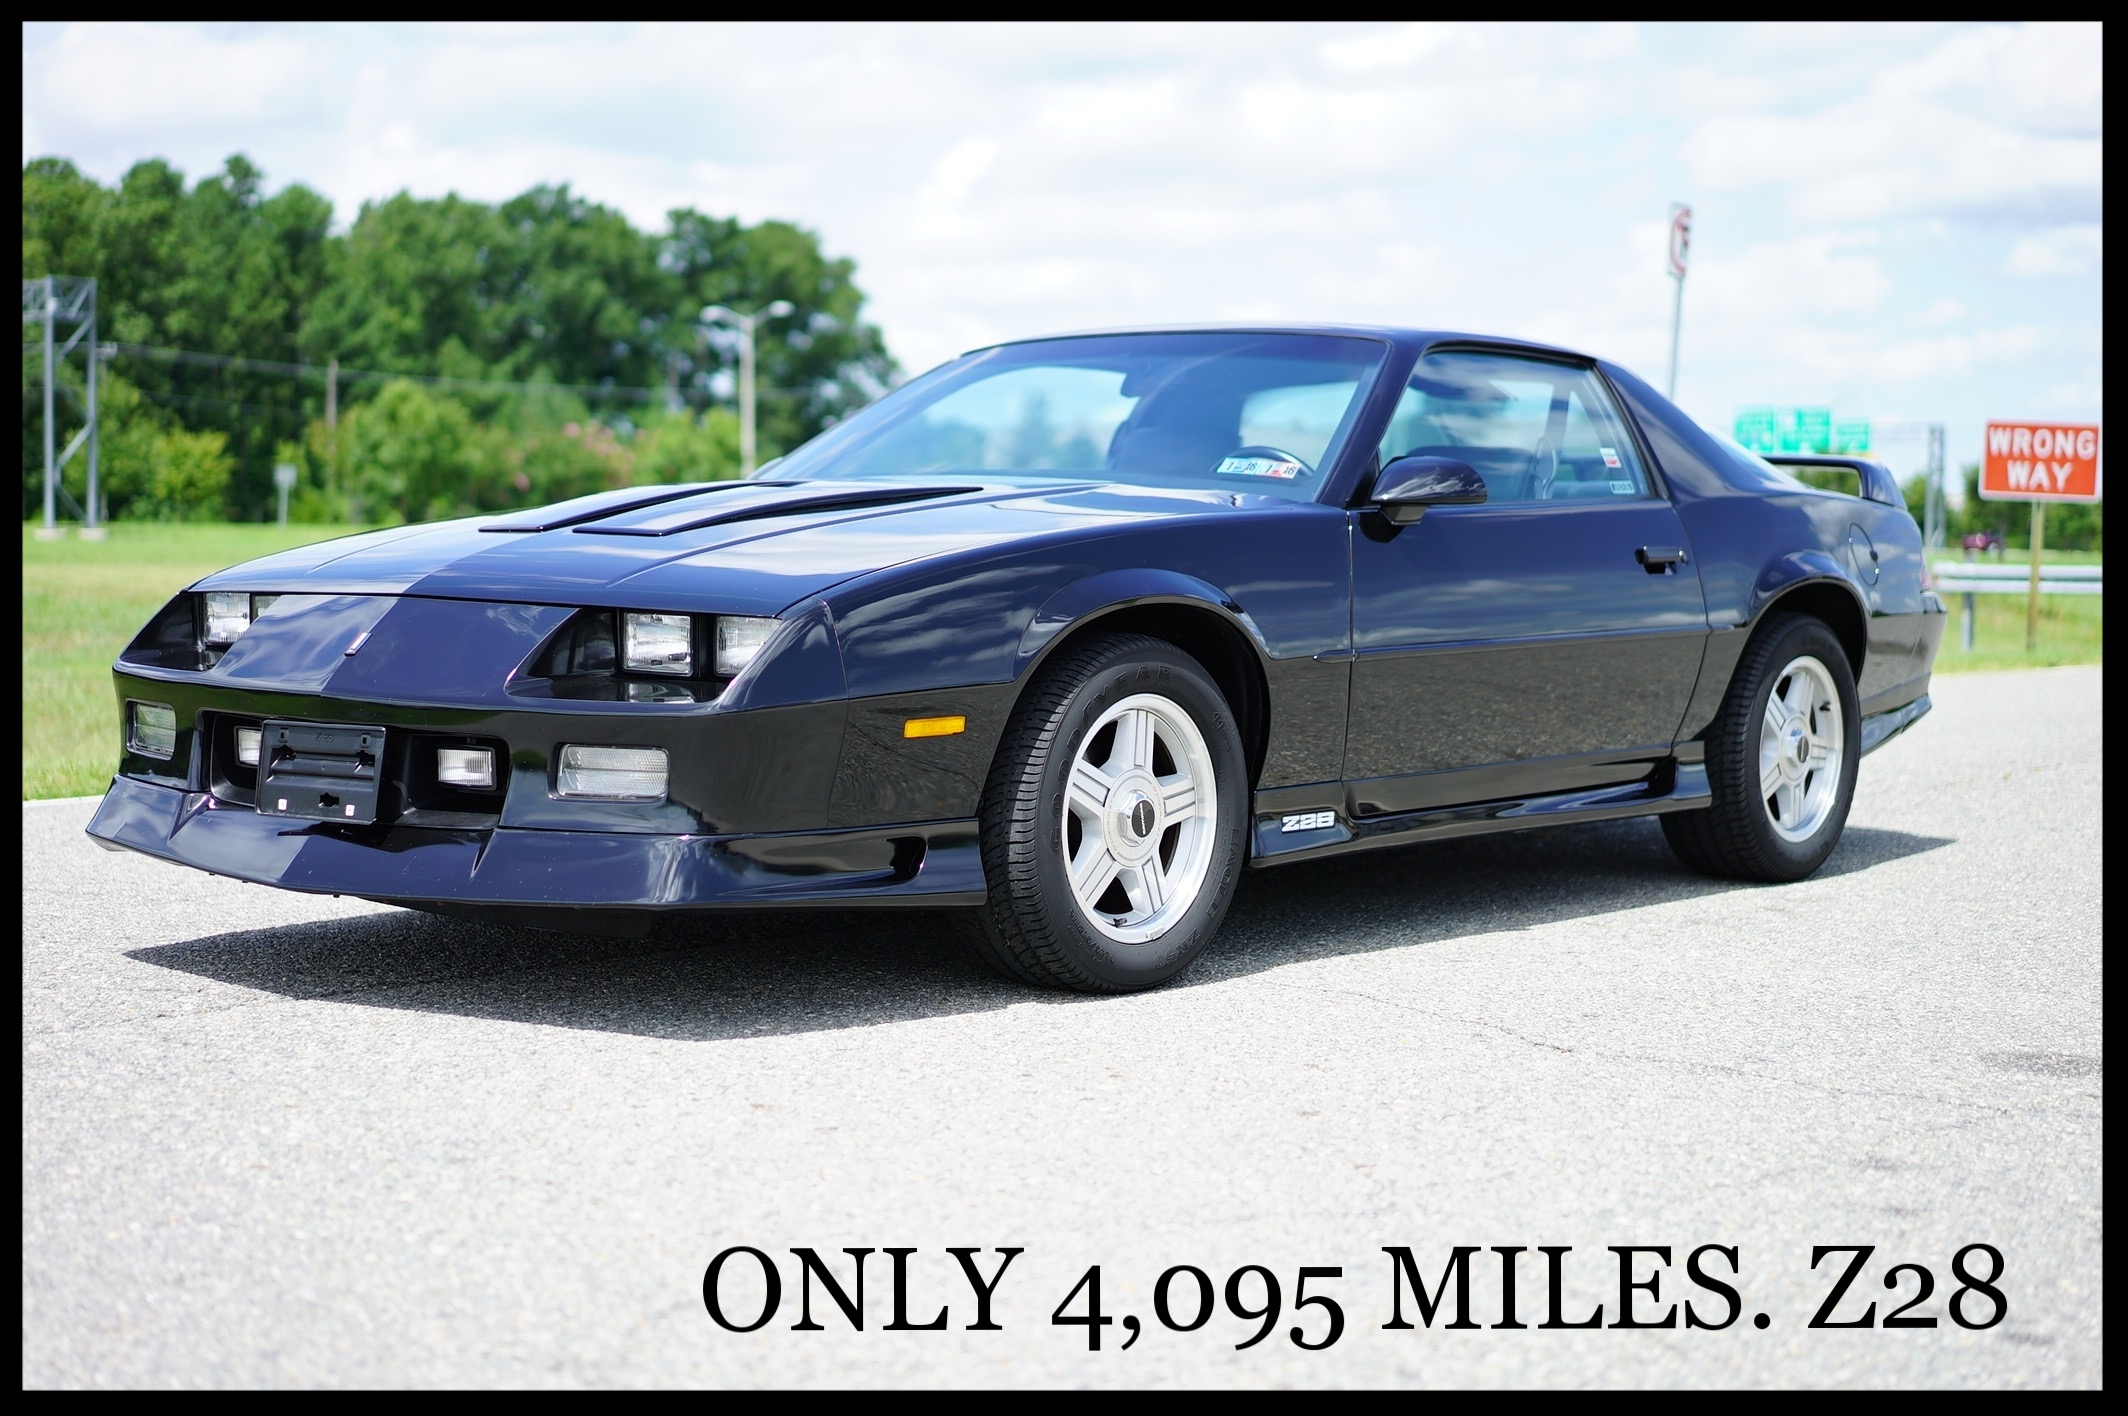 1992 Camaro Z28 25th Ann. Edition....ONLY 4K ORIGINAL MILES...Collector Quality....Investment Vehicle and Very Rare